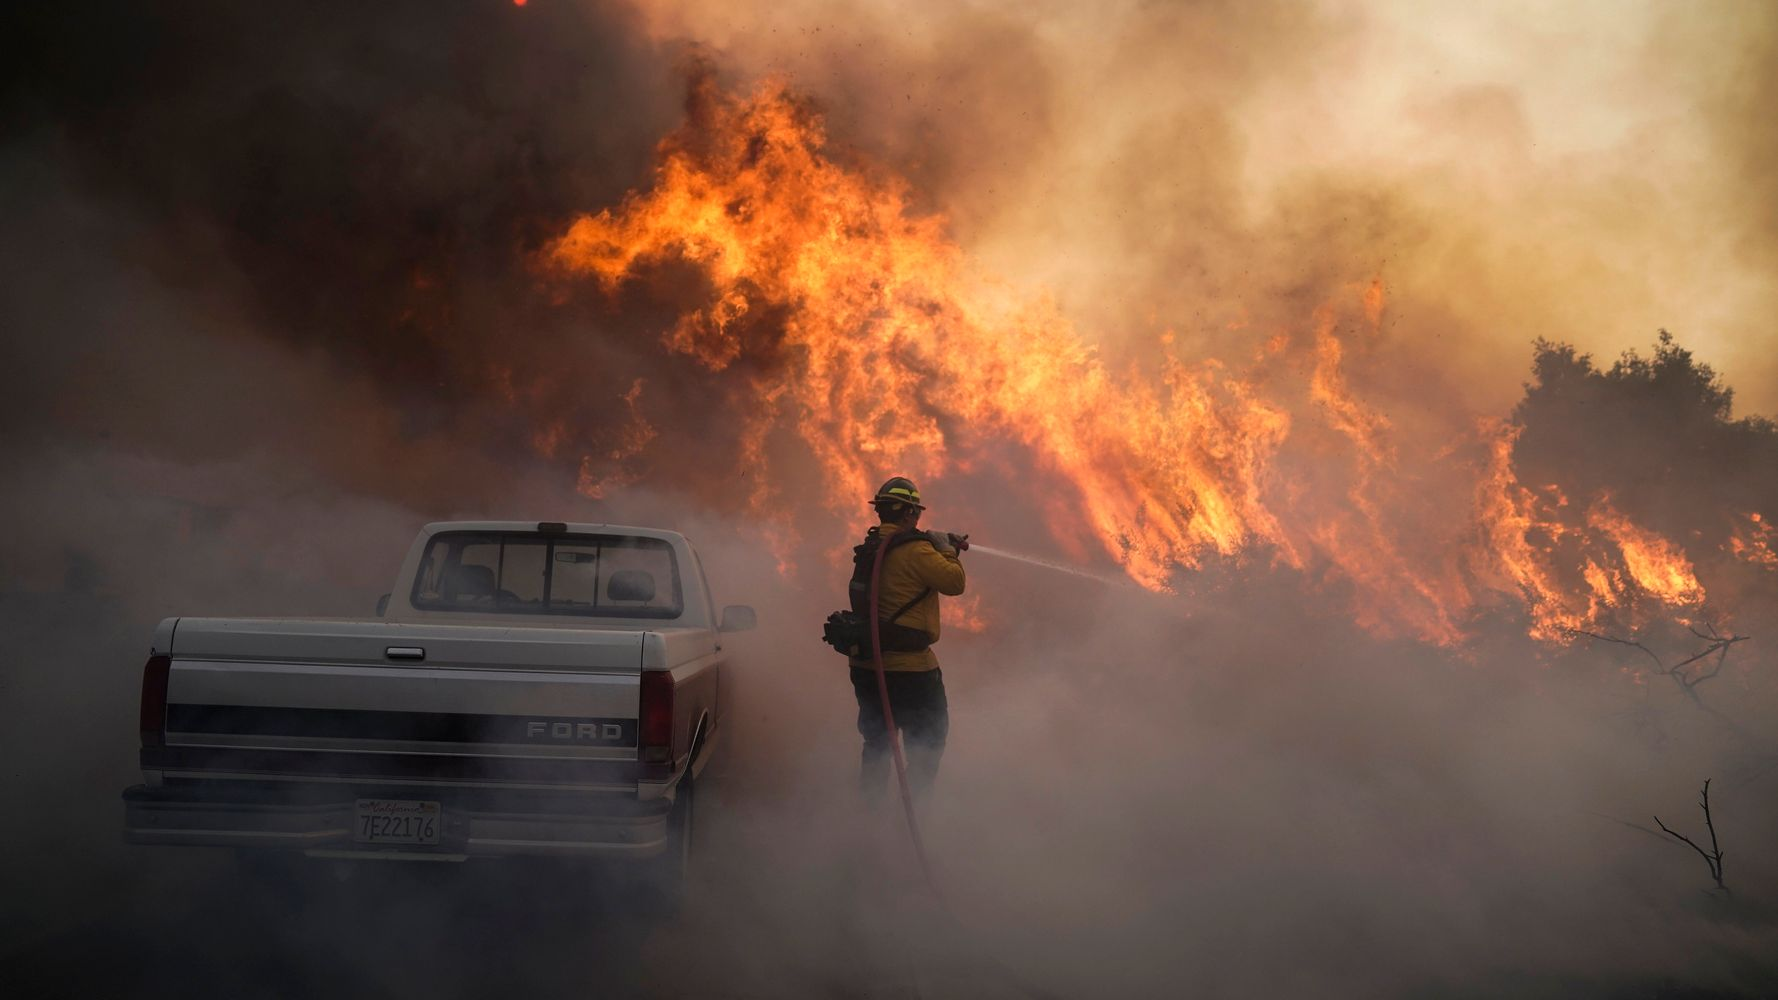 Tens Of Thousands Evacuated In Southern California As Out-Of-Control Wildfires Rage